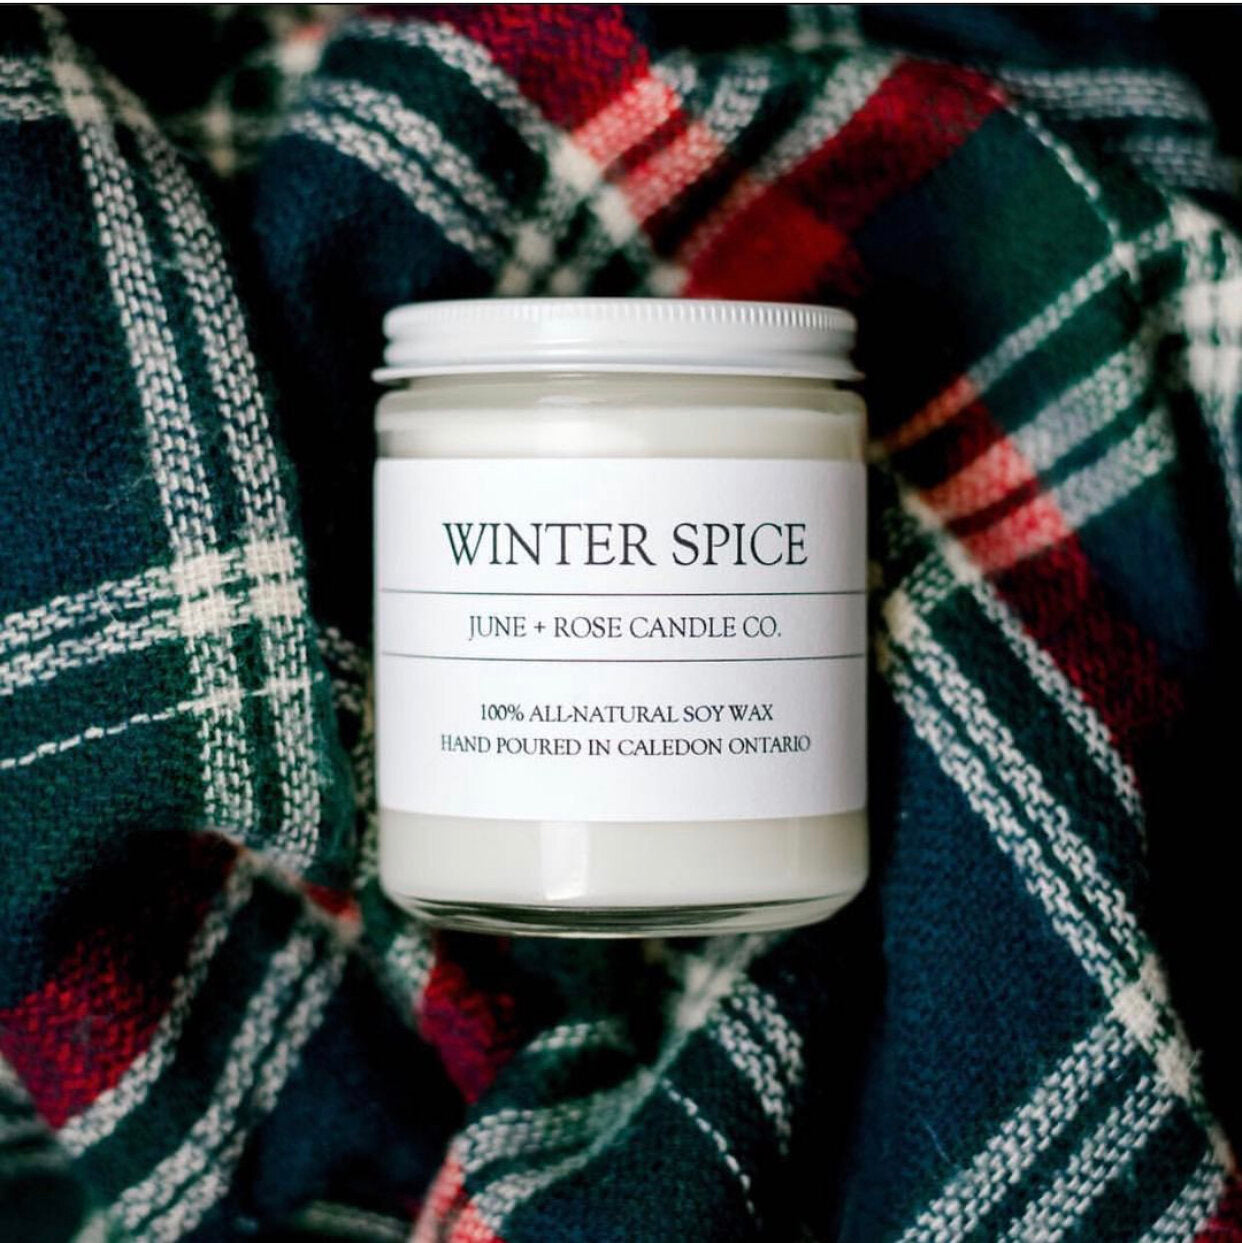 Winter Spice Candle (June+Rose Candle Co)